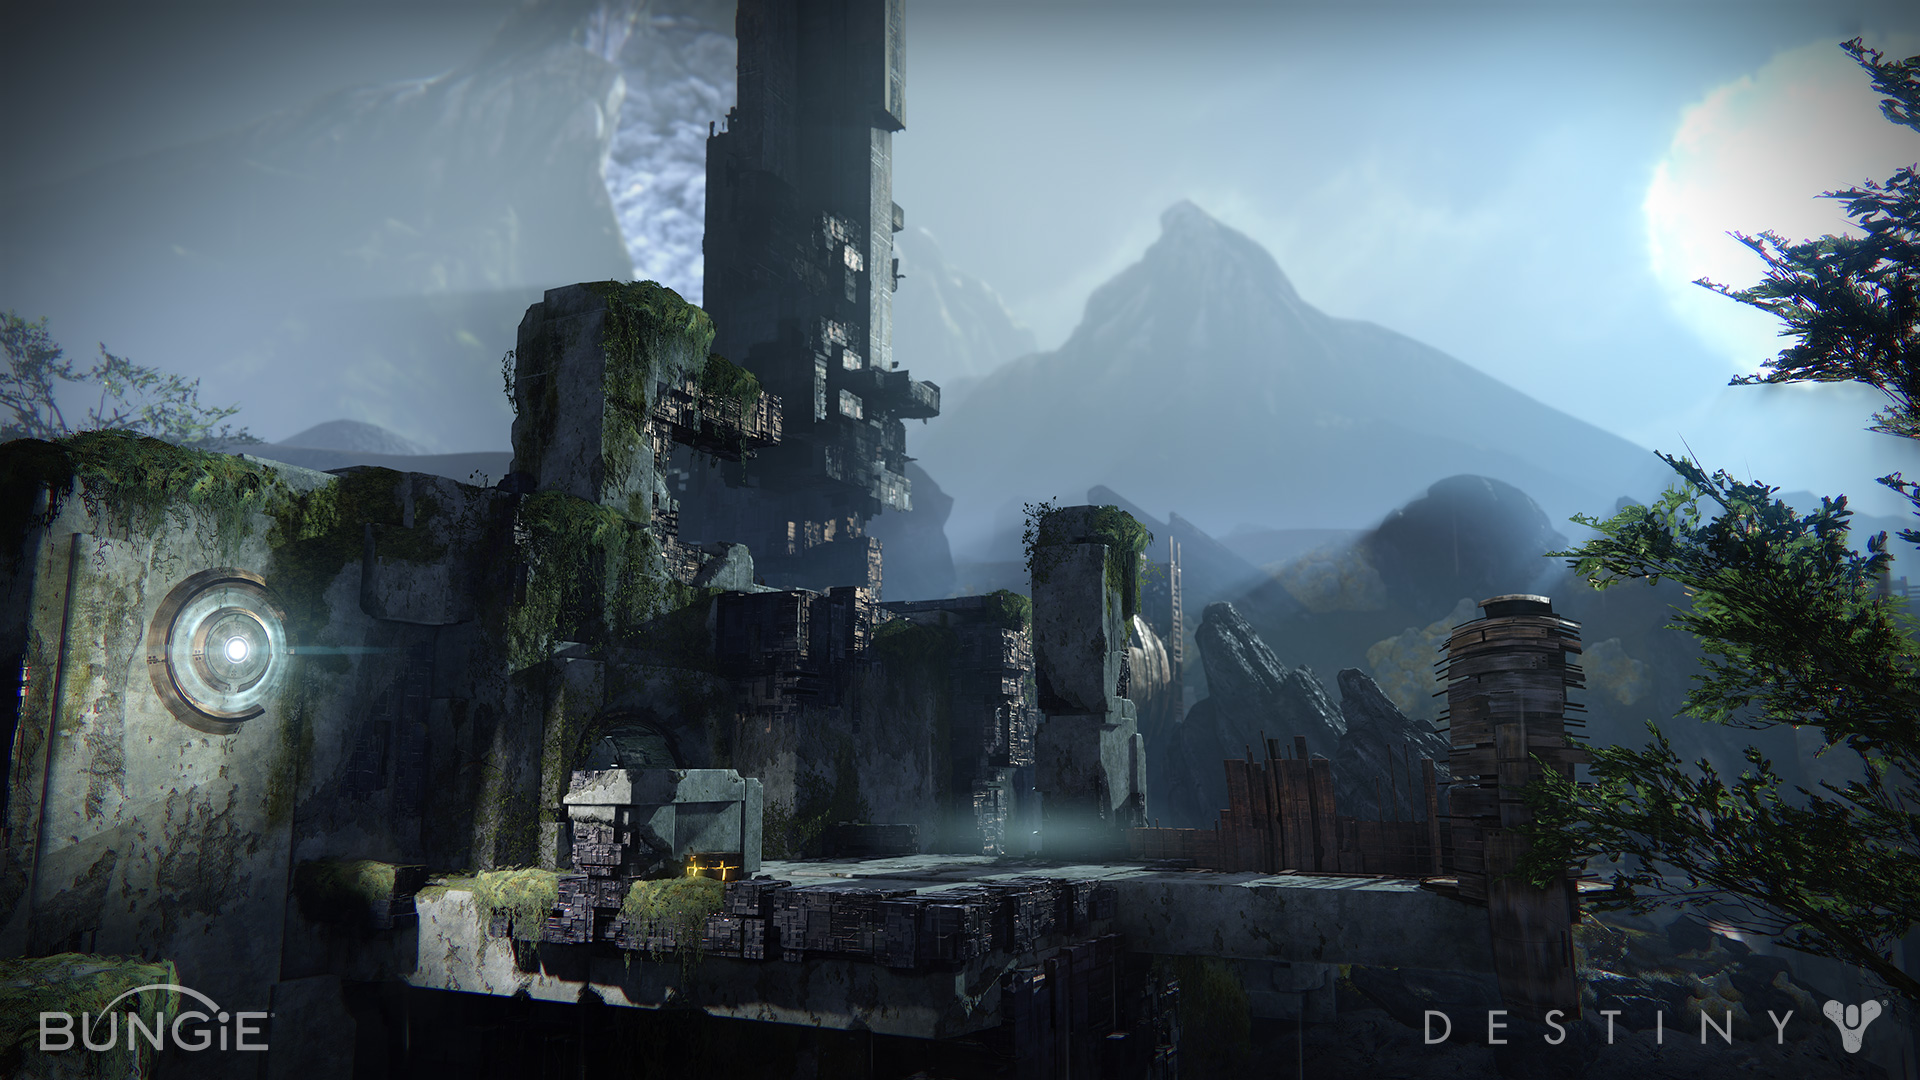 Bungie Weekly Update - 06/27/2014 > News   Bungie.net on destiny reef map, full destiny old russia map, mars destiny map, destiny map size, endless steps destiny map, full vault of glass destiny map, hall of whispers destiny map, destiny full map labeled, rune factory tides of destiny map, destiny vog map, anchor light moon of destiny map, destiny earth map, tales of destiny 2 map, destiny glass vault raid,